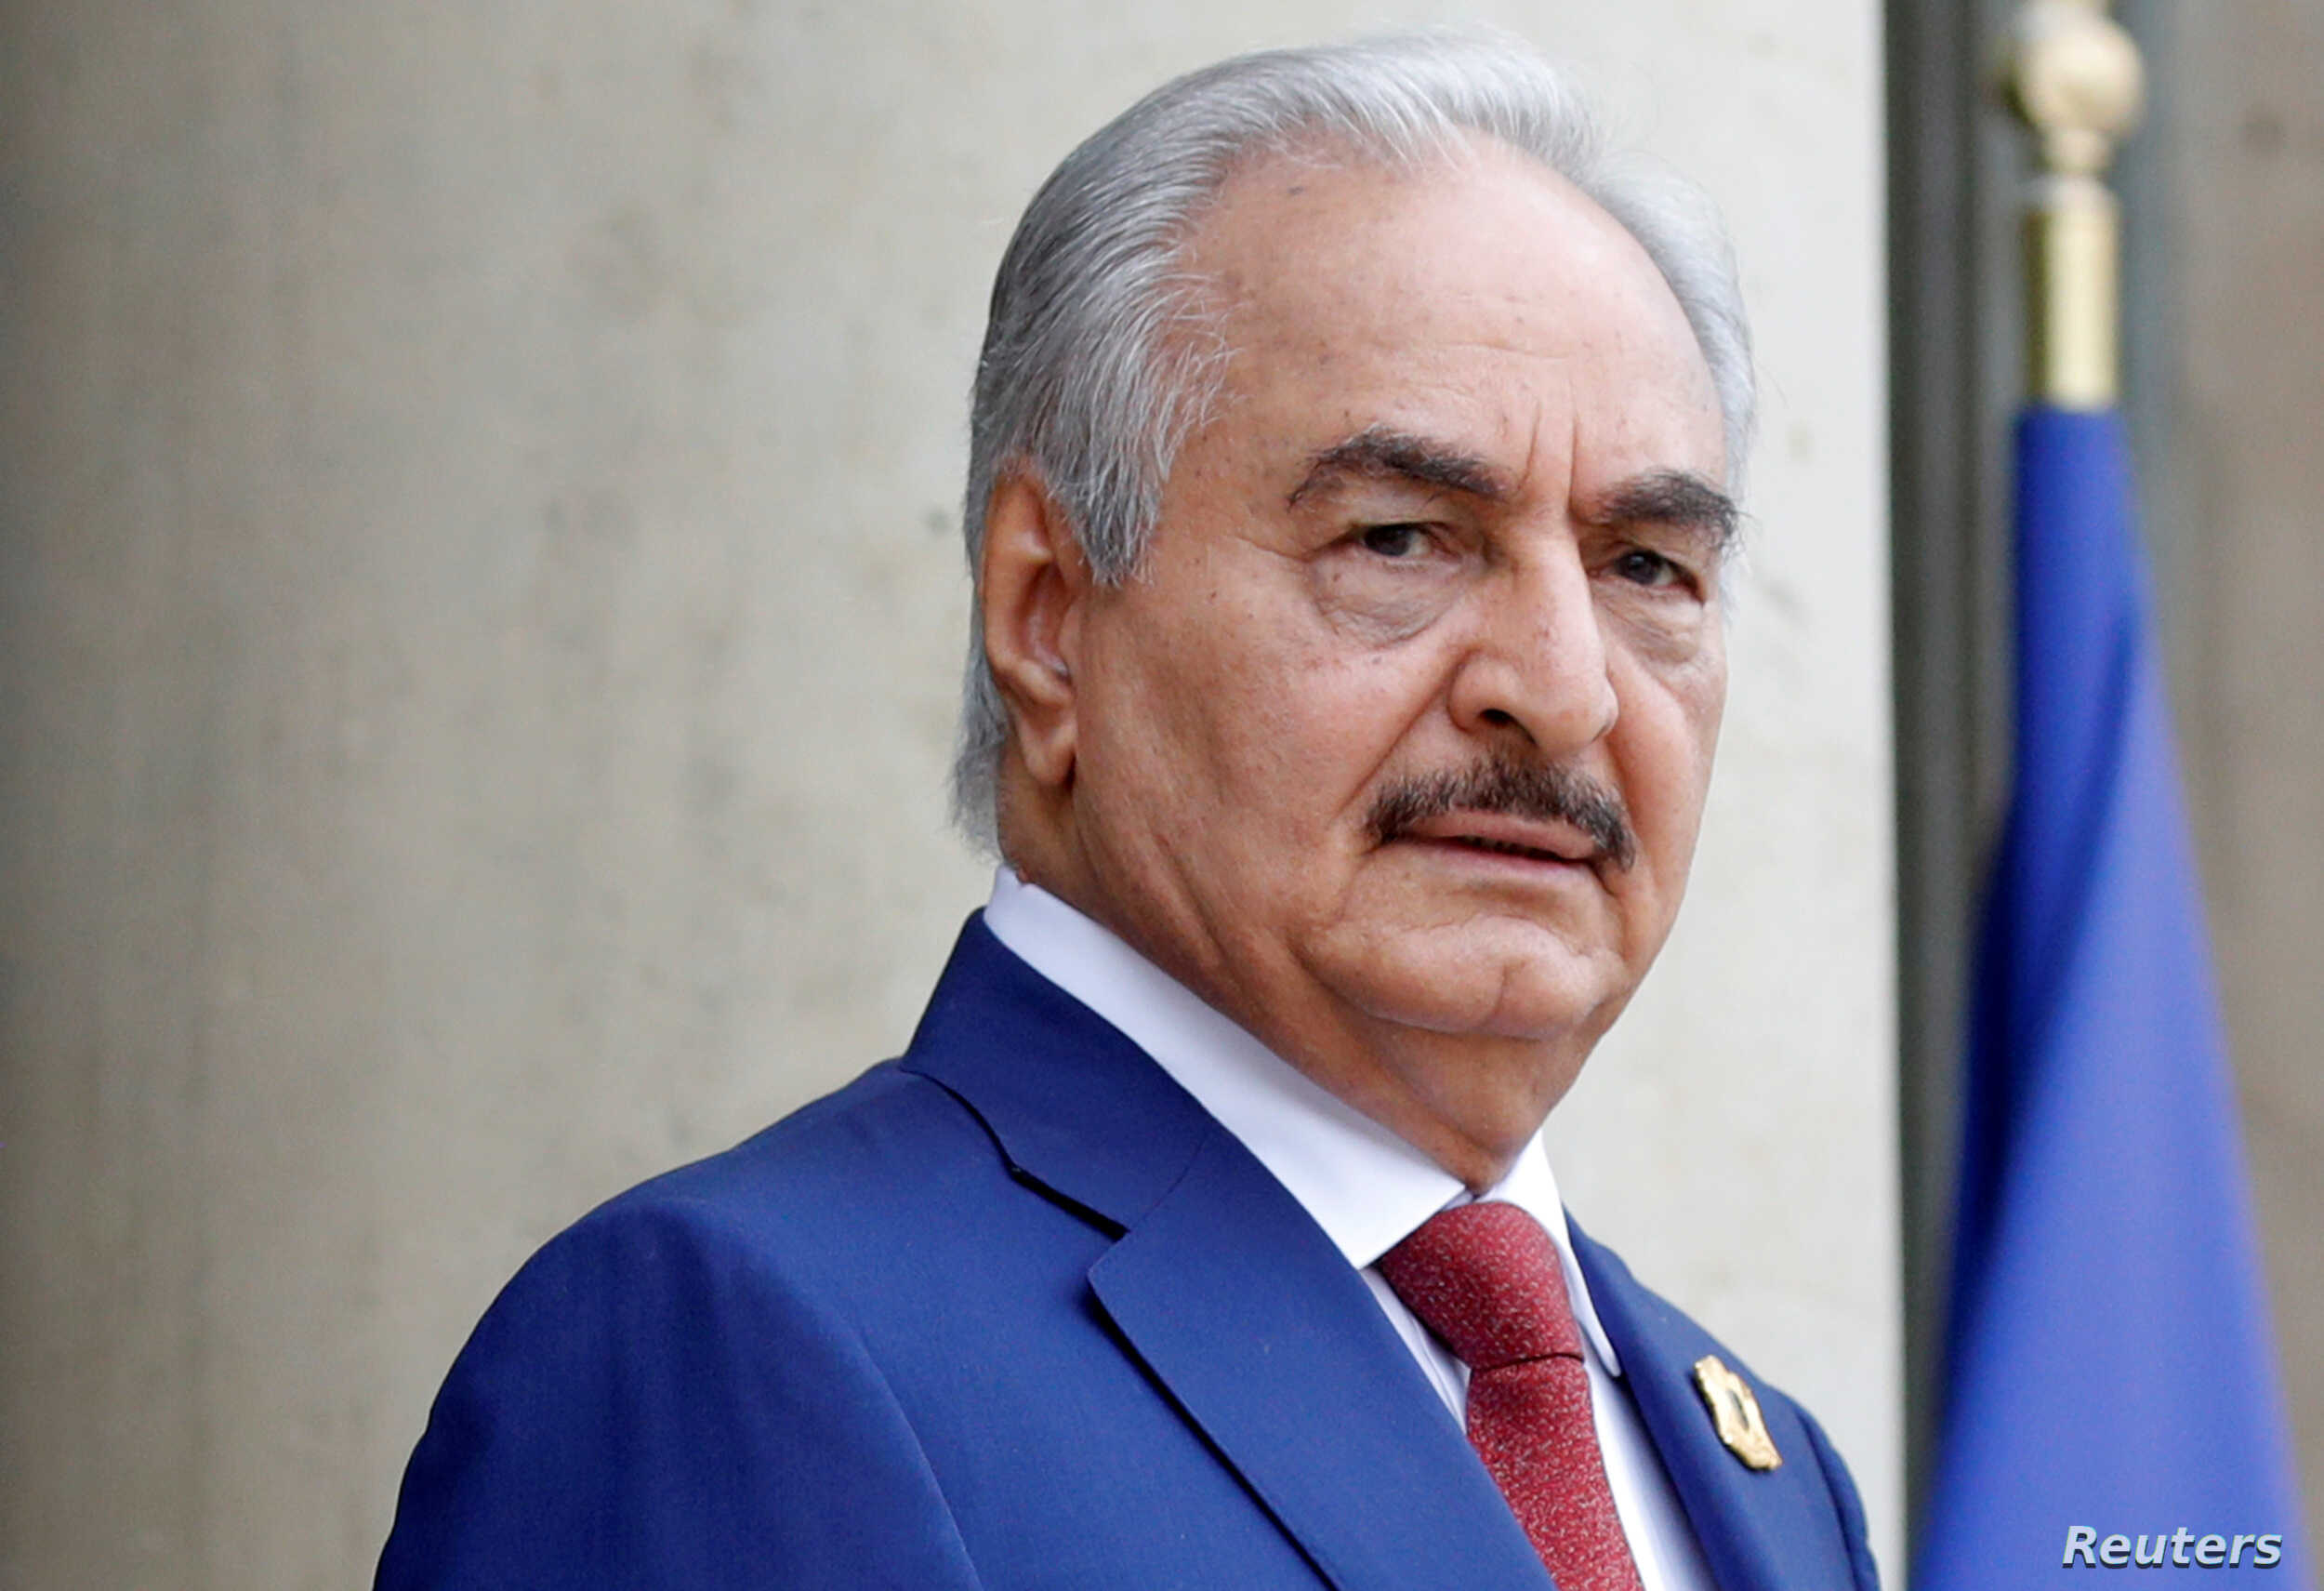 FILE PHOTO:  Khalifa Haftar, the military commander who dominates eastern Libya, arrives to attend an international conference on Libya in Paris, May 29, 2018.